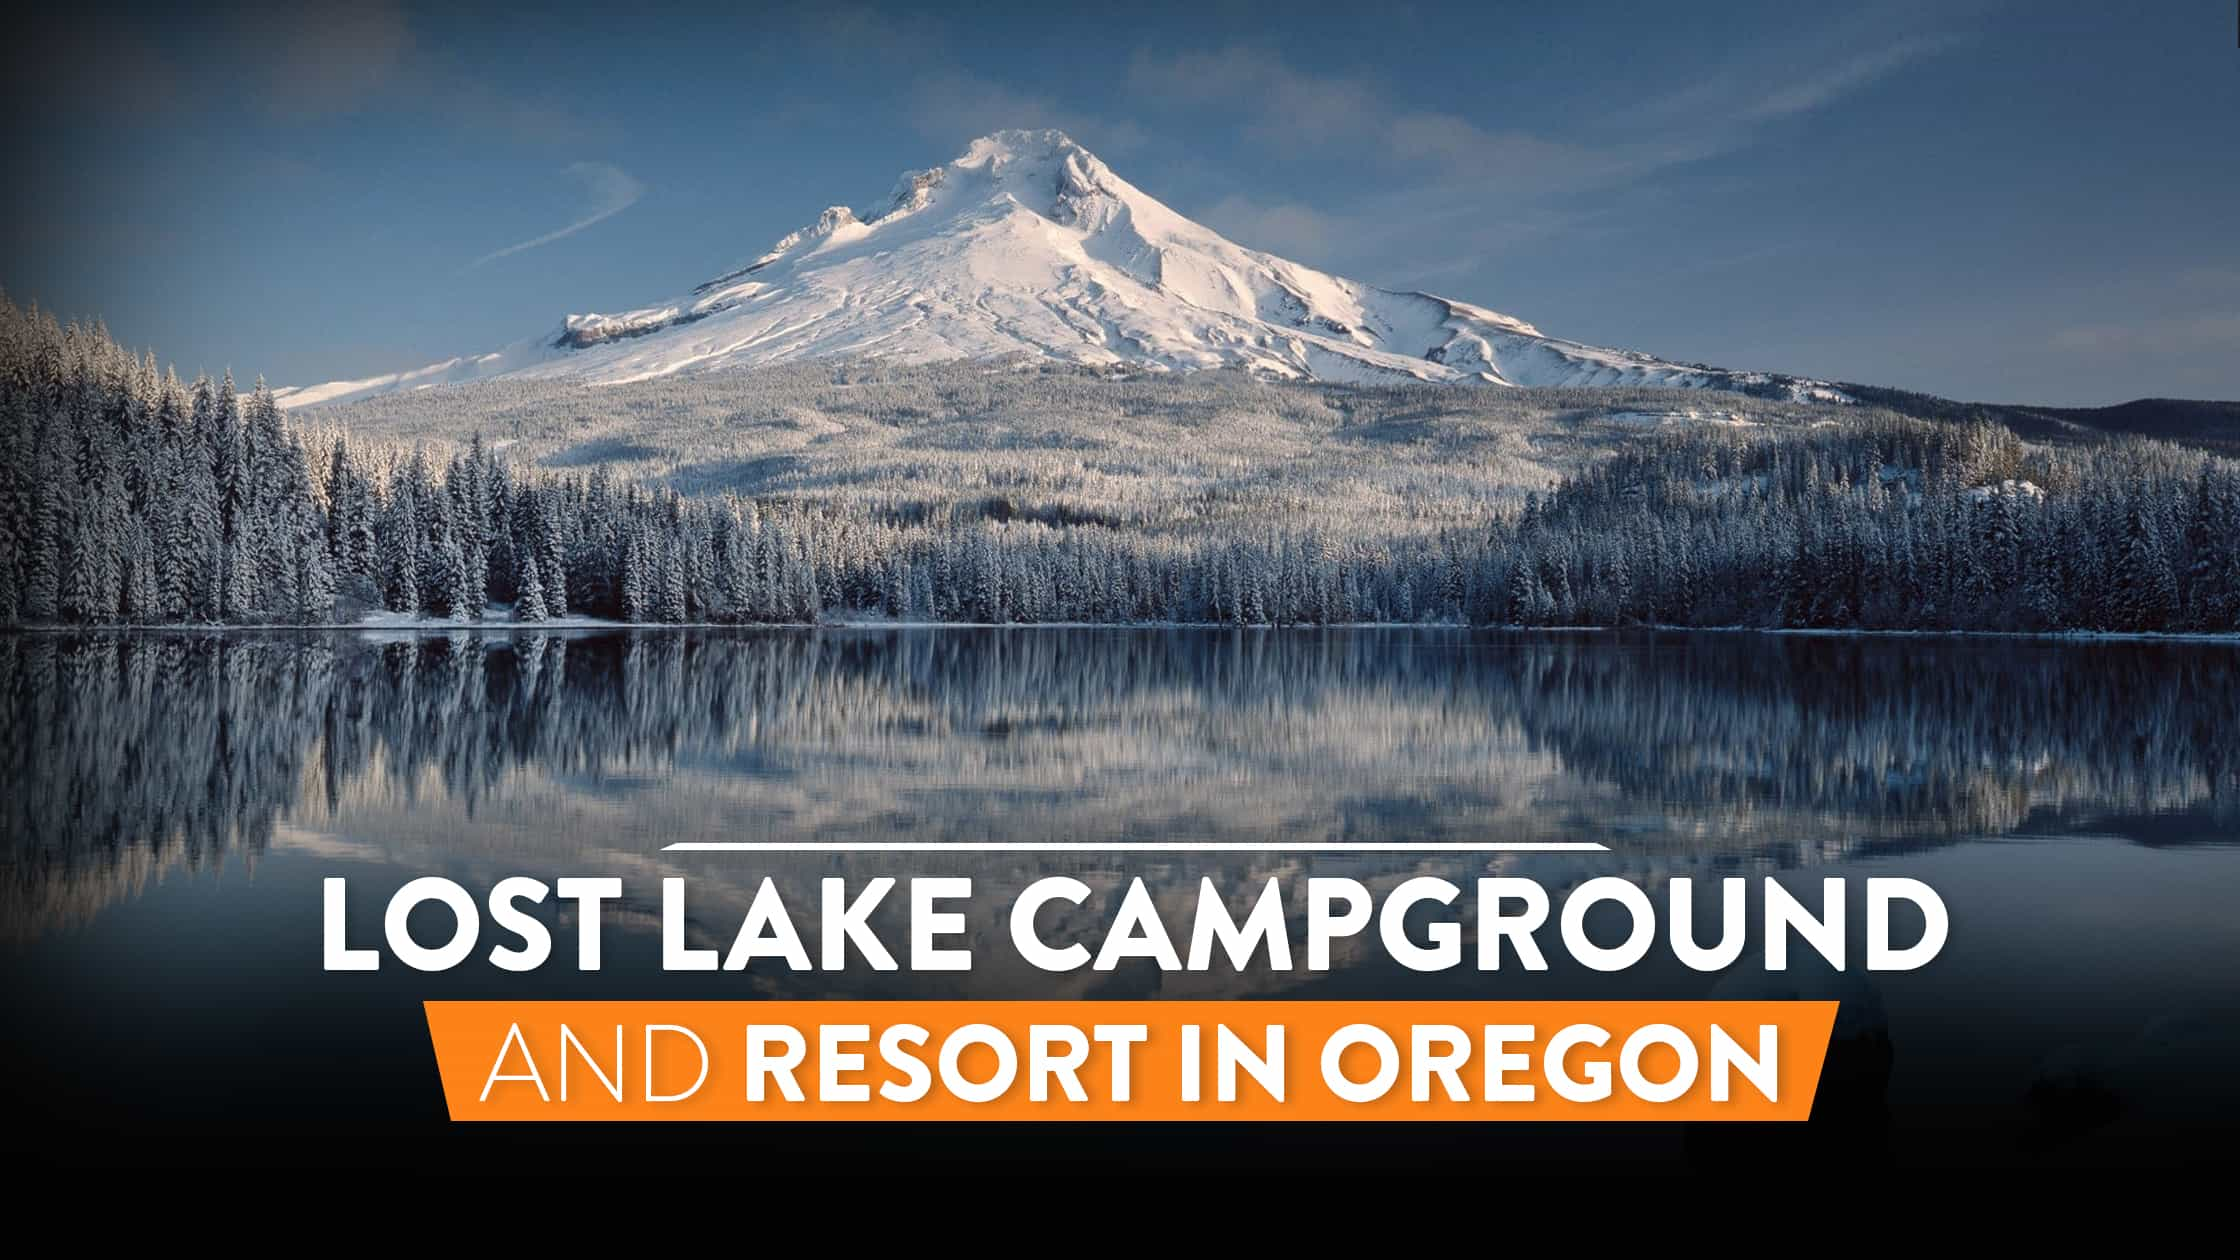 Lost Lake Campground and Resort